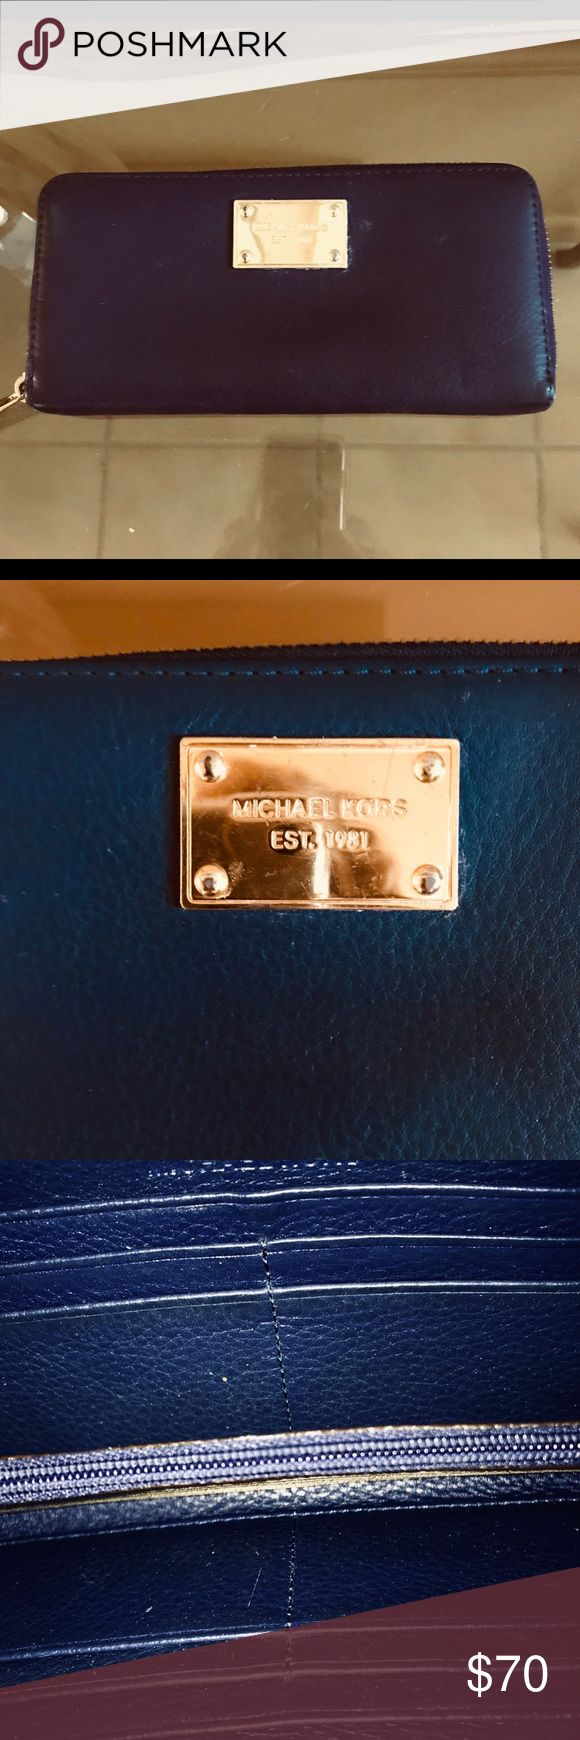 """🔴MICHAEL KORS CONTINENTAL WALLET 🔴THIS IS A BEAUTIFUL DARK NAVY WITH ROYAL BLUE UNDERTONES MICHAEL KORS AND GOLD TONE HARDWARE CONTINENTAL WALLET.  TWELVE SLOT COMPARTMENTS FOR CREDIT CARDS. ZIPPERED INTERIOR POCKET. TWO GUSSETS FOR BILLS.  WALLETS ZIPS CLOSED FOR SECURITY. LEATHER IS CONDITIONED AND IS EXCELLENT WITHOUT SIGNS OF WEAR. INTERIOR IS CLEAN AND IN EXCELLENT CONDITION. APPROXIMATELY 8"""" L x 4"""" W. OPENS APP. 5"""". THERE IS SOME MINOR SCRATCHING ON HARDWARE. PLEASE LOOK AT LAST TWO…"""